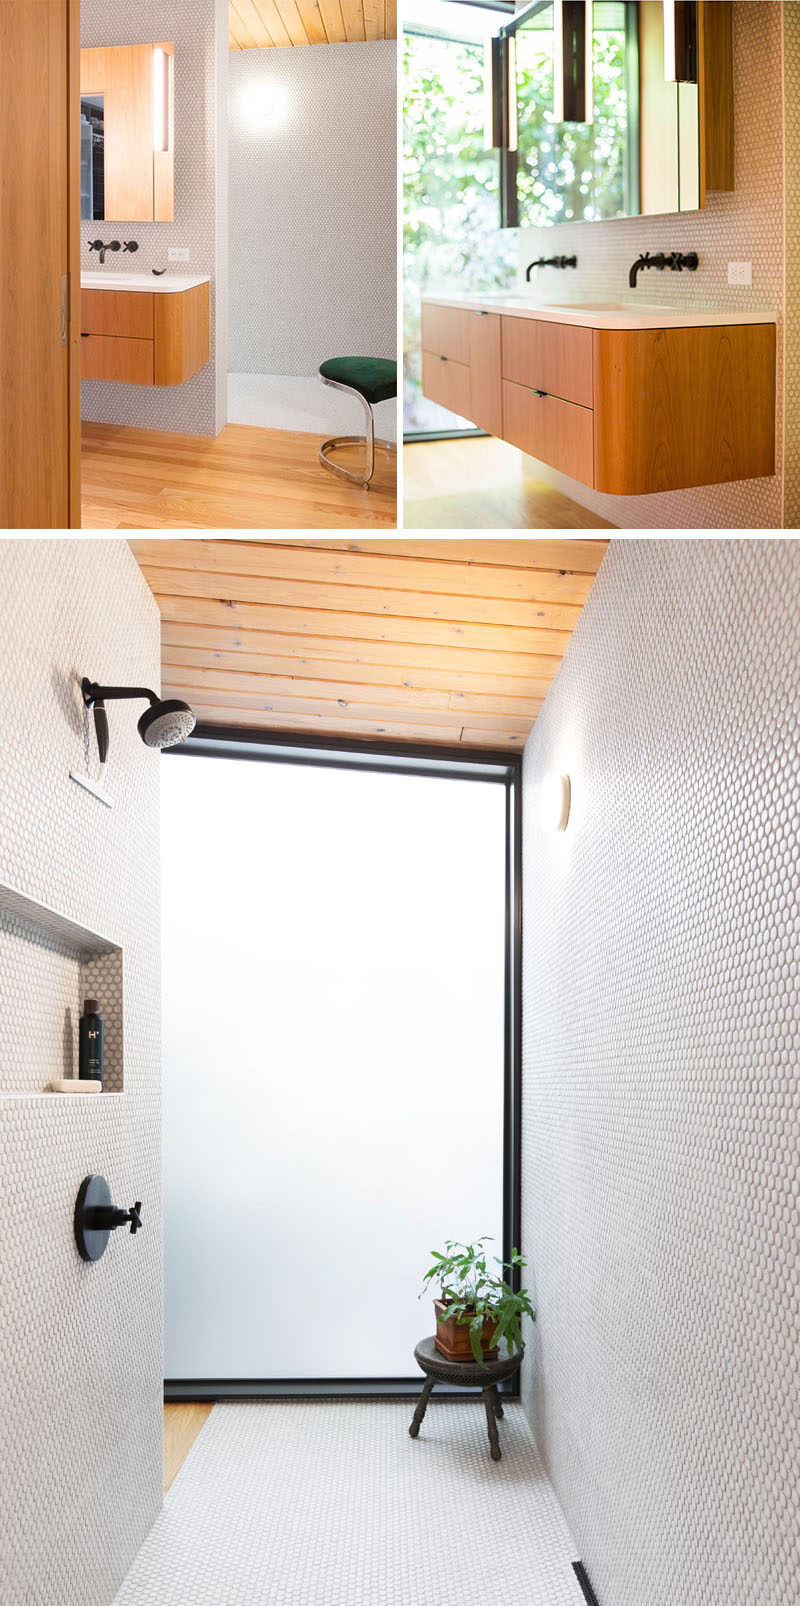 This modern master bathroom features white penny tiles, a floating wood vanity and an open shower. #MasterBathroom #PennyTiles #FloatingVanity